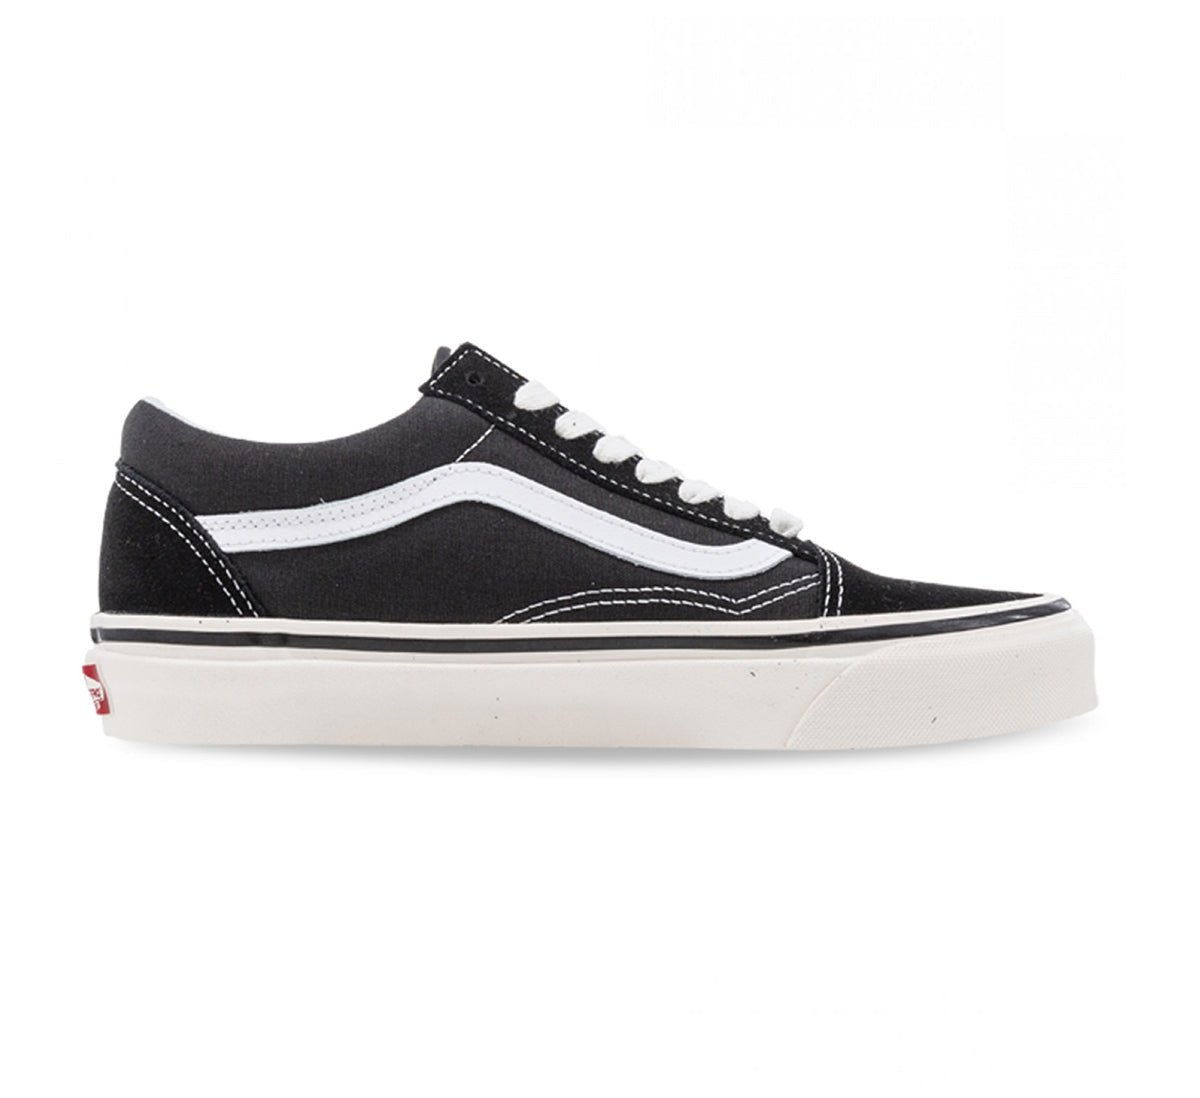 Vans Old Skool 36 DX Anaheim – Highs and Lows